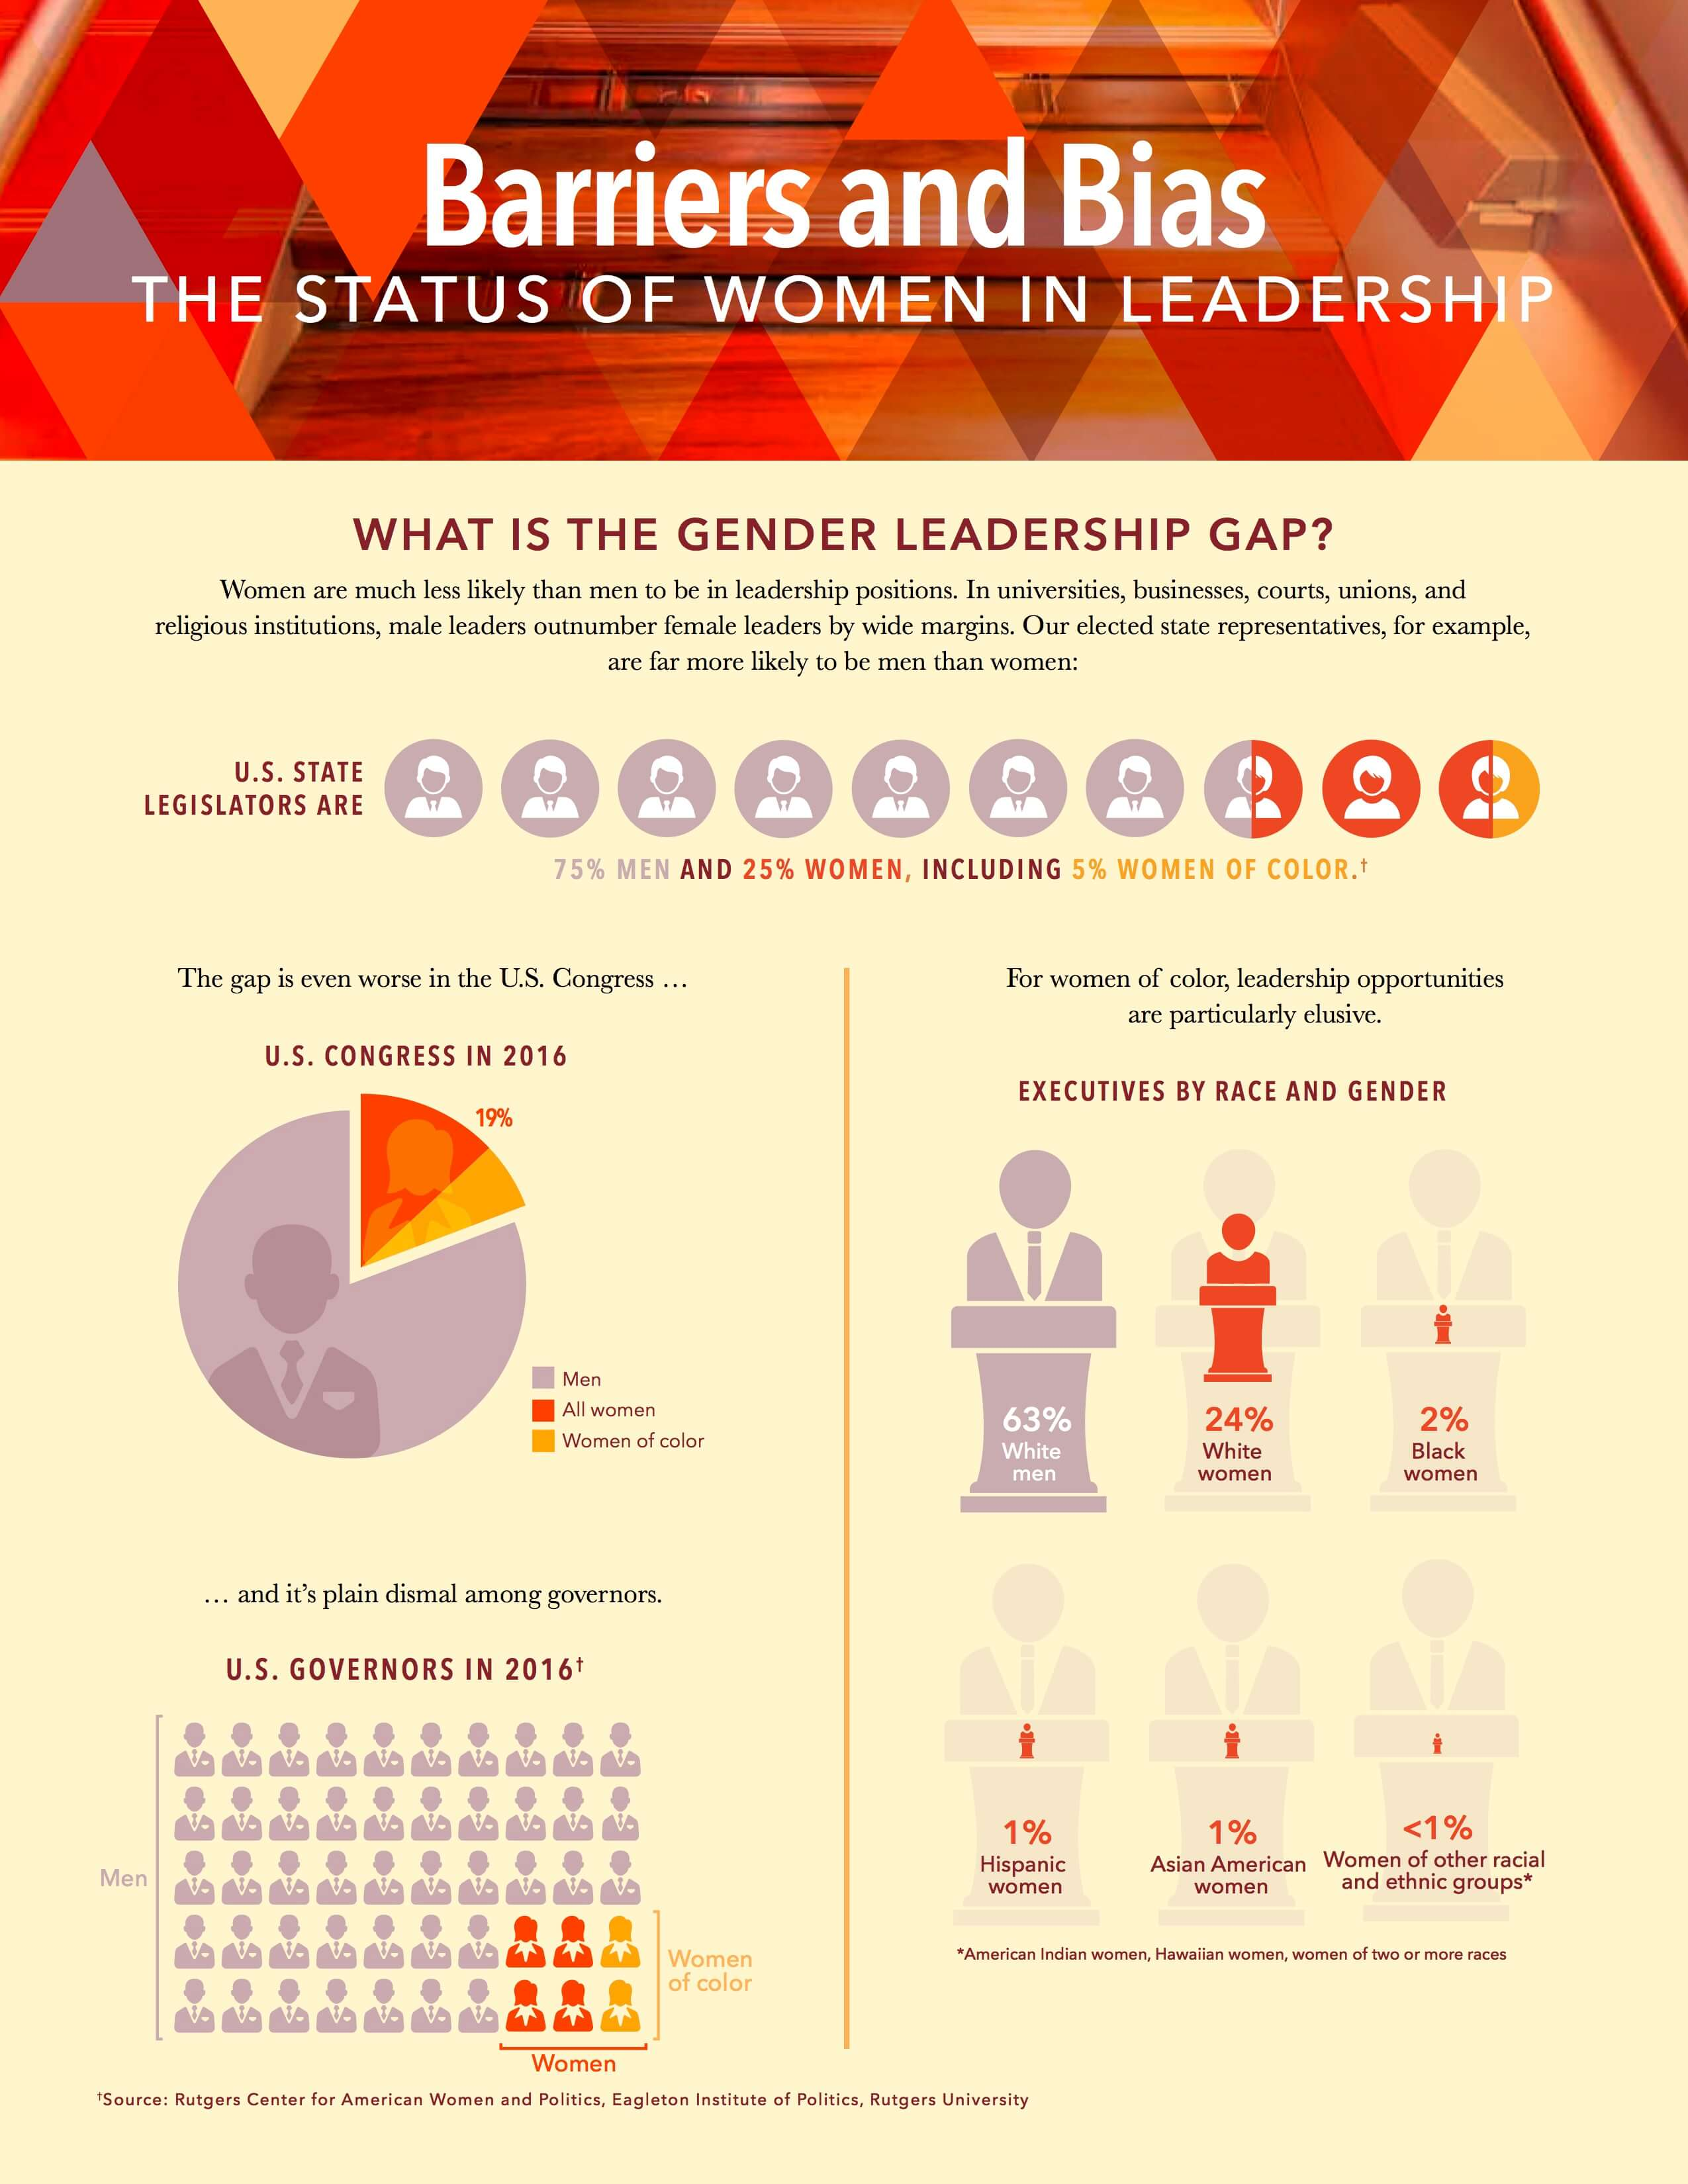 AAUW Barriers and Bias: The Status of Women in Leadership